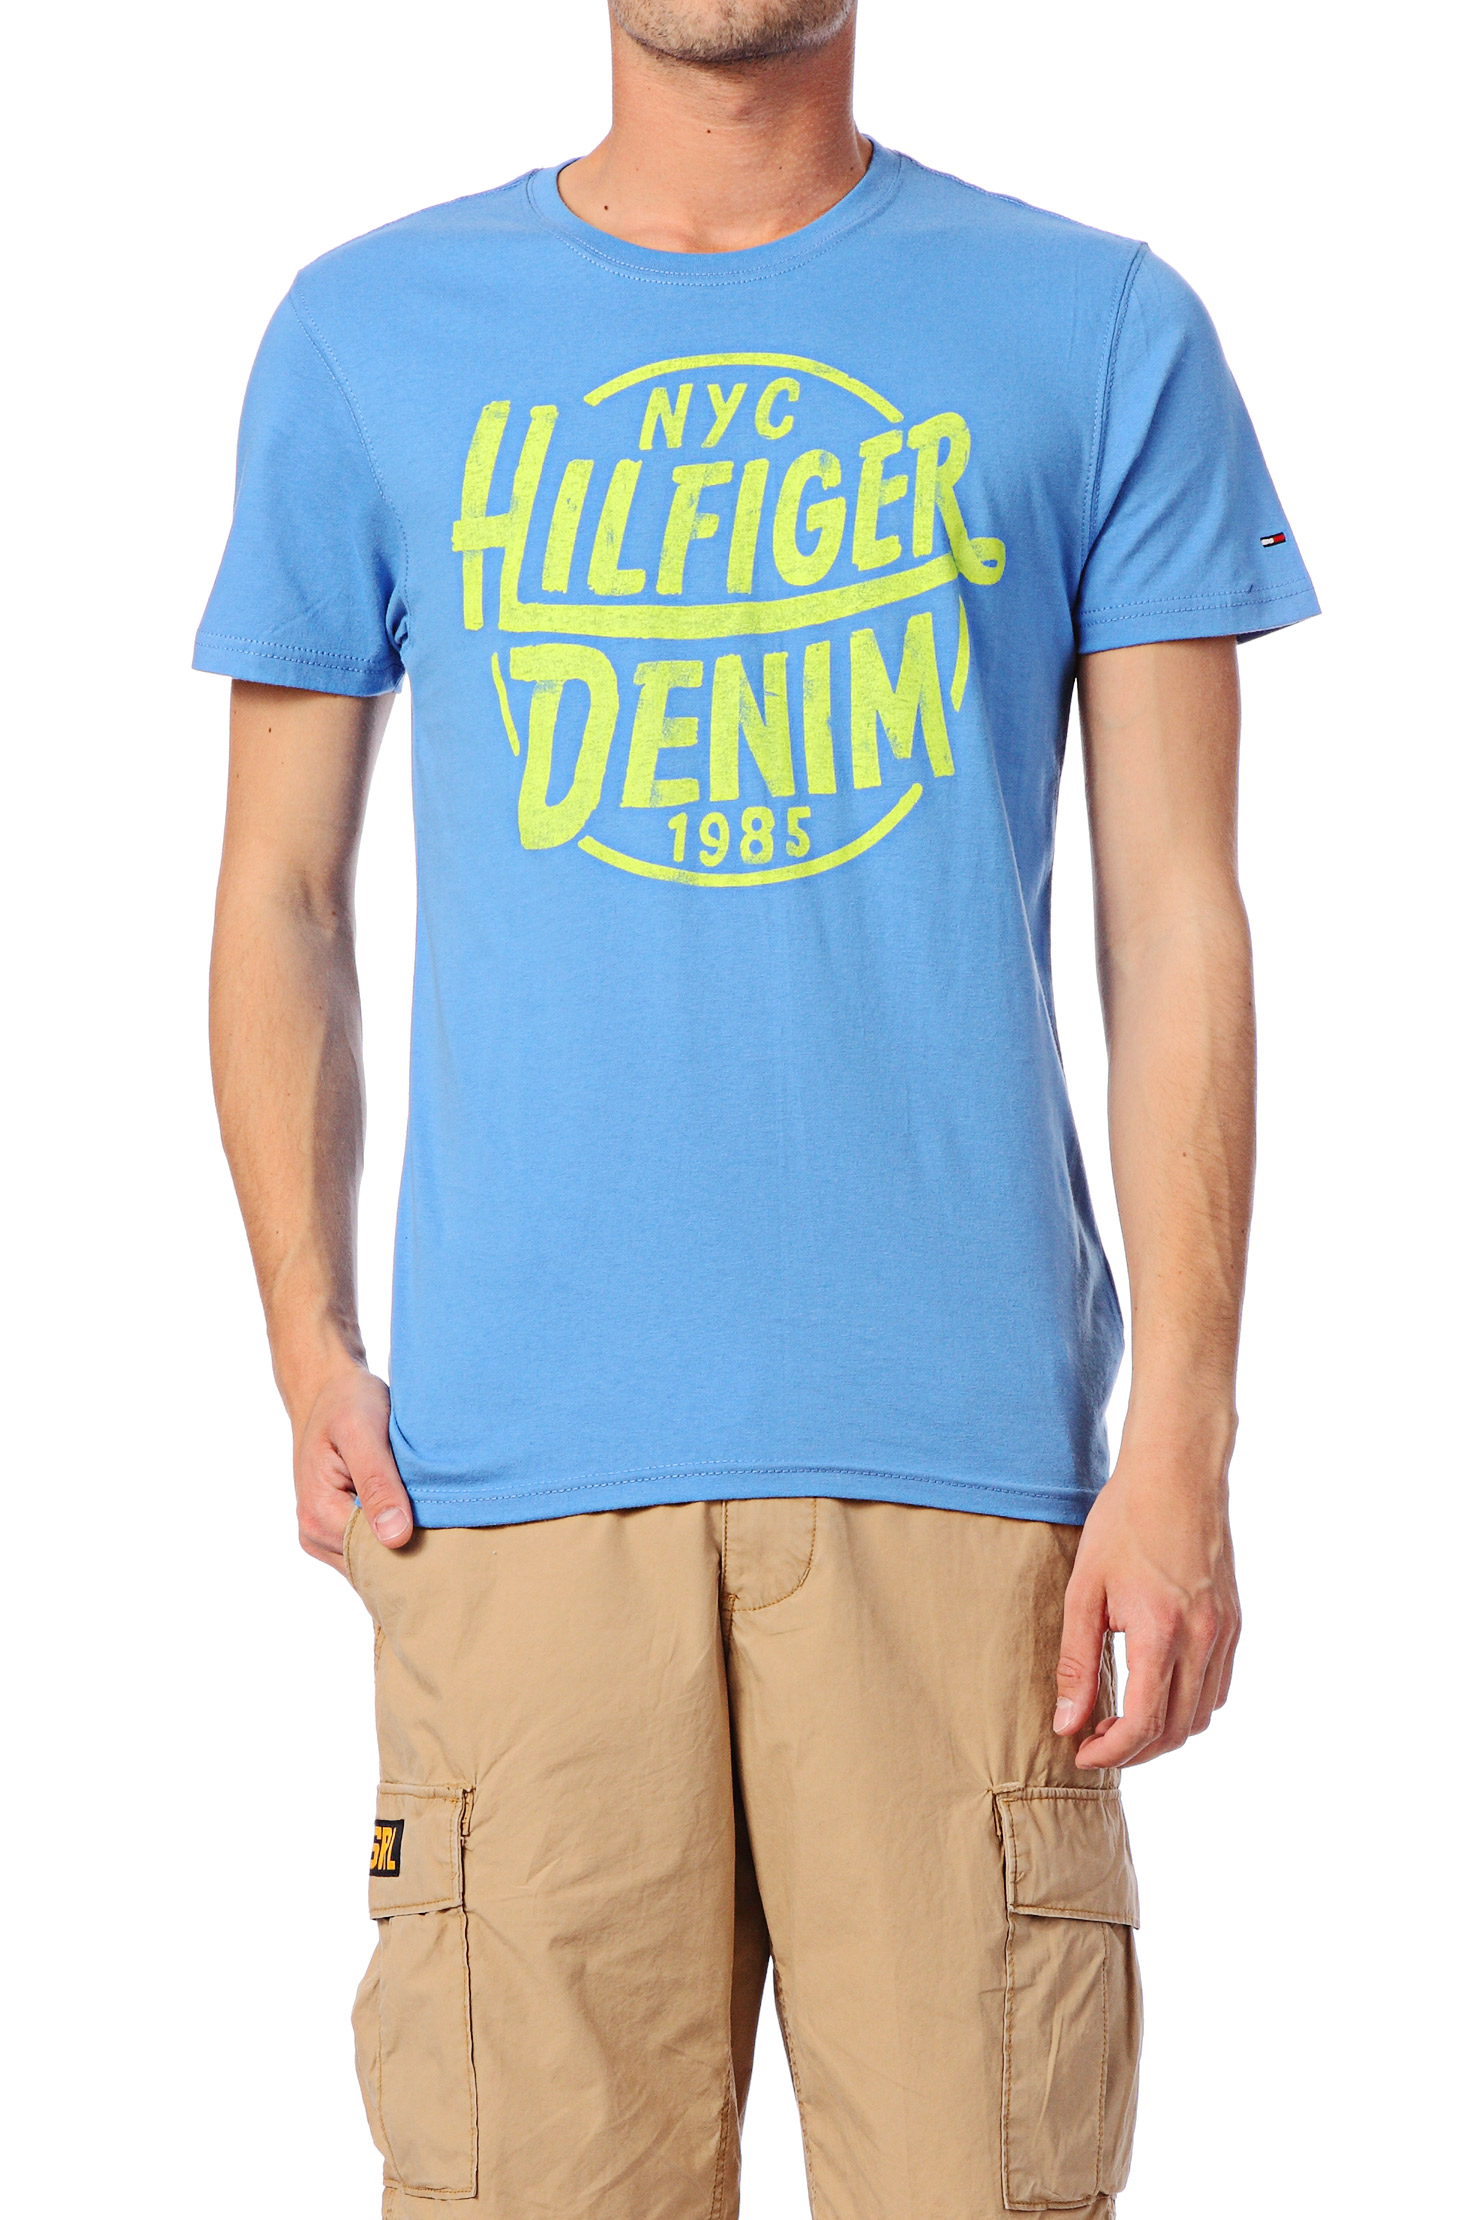 hilfiger denim blue short sleeve t shirt 1957846891 federer cn tee ss. Black Bedroom Furniture Sets. Home Design Ideas